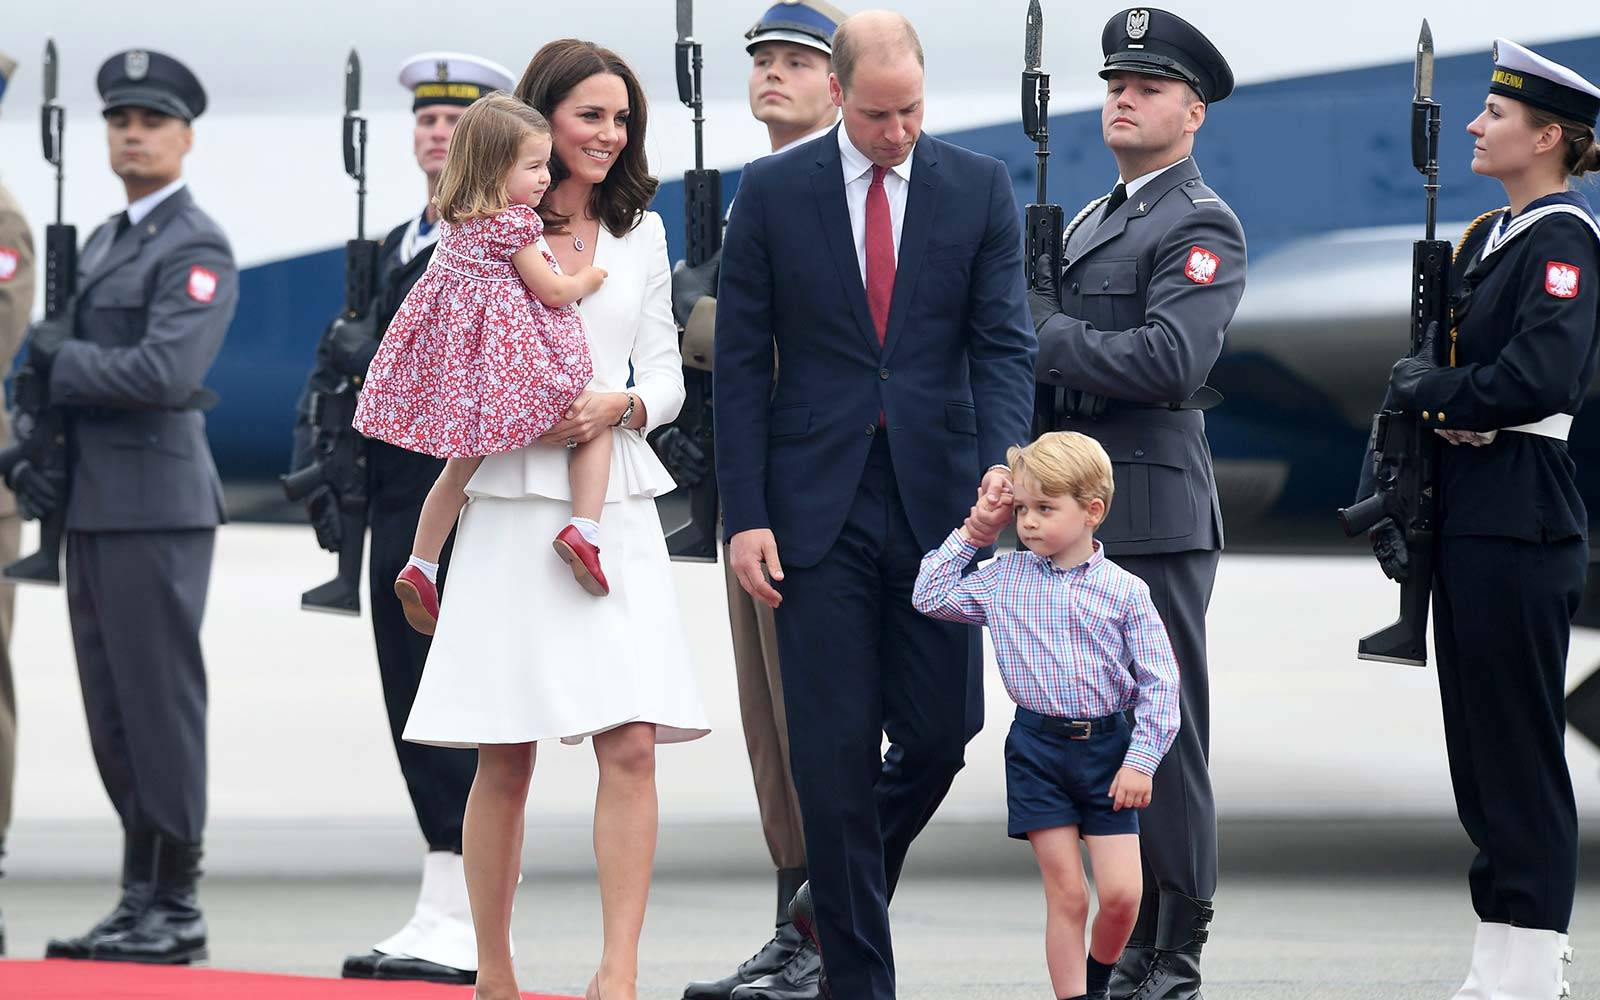 Princess Charlotte, Catherine, Duchess of Cambridge, Prince George and Prince William, Duke of Cambridge arrive at Warsaw airport ahead of their Royal Tour of Poland and Germany